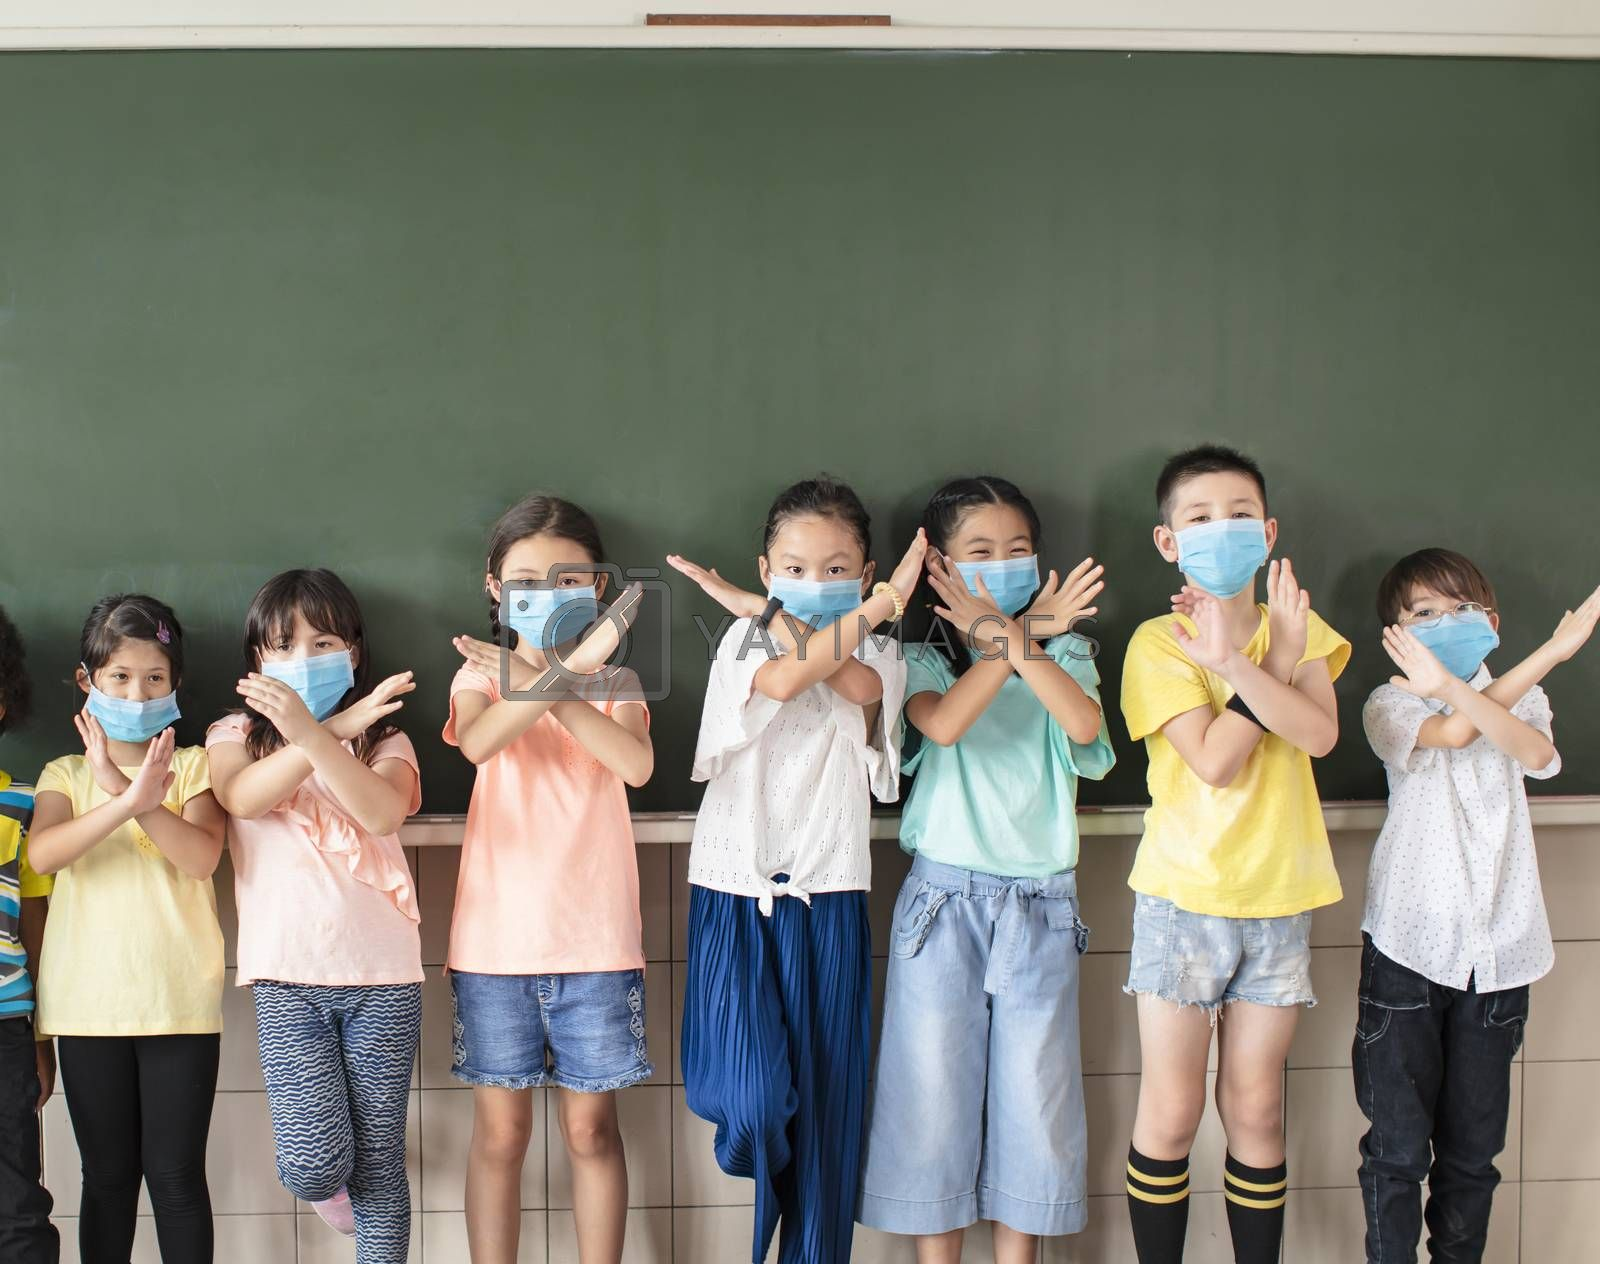 Group of diverse young students wear mask and showing stop sign gesture in classroom